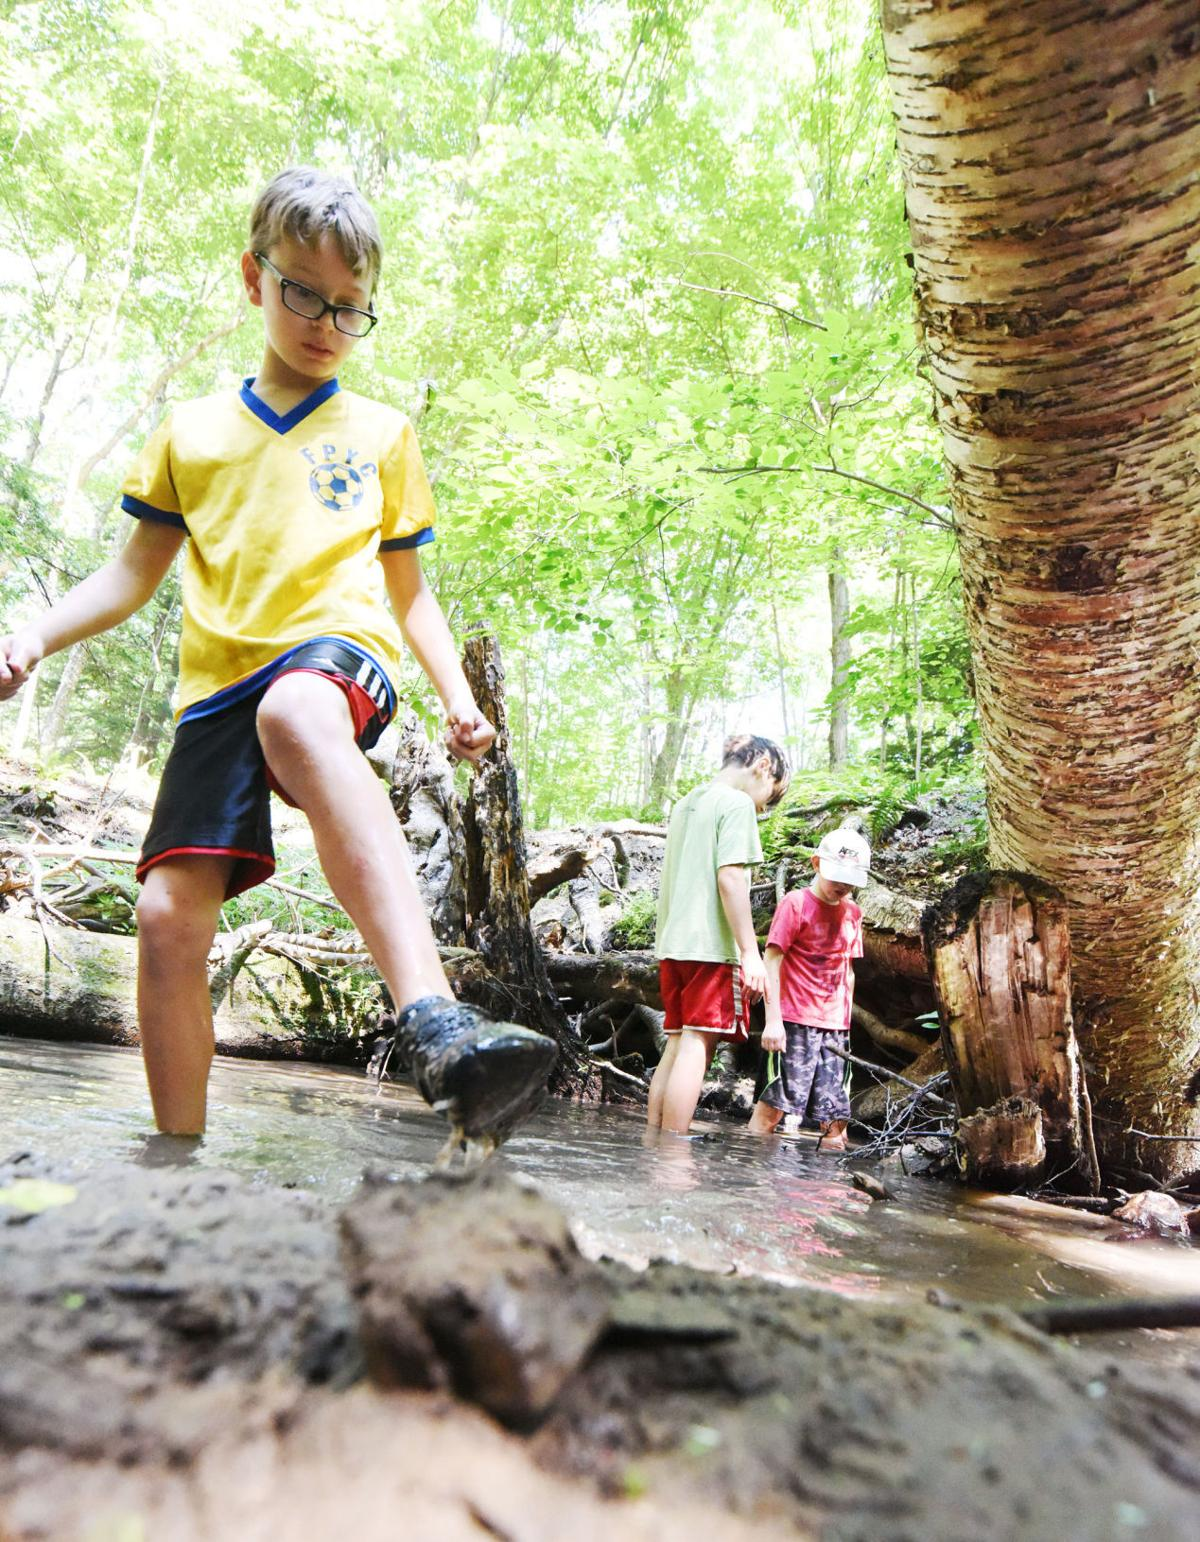 A giant, wooded playground': Area children relish summer